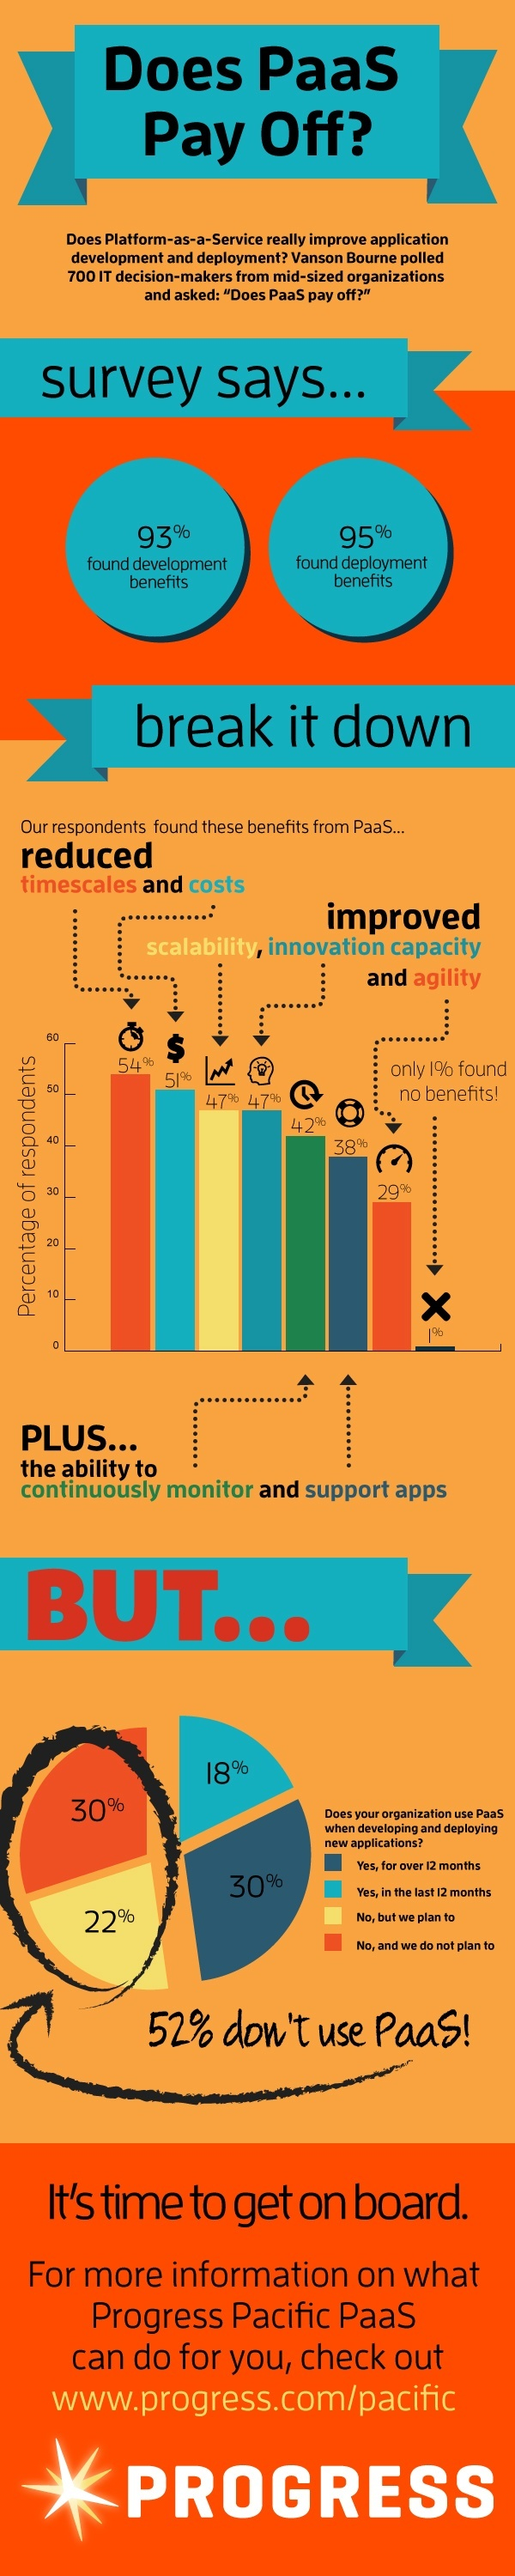 PaaS Pays Off Infographic